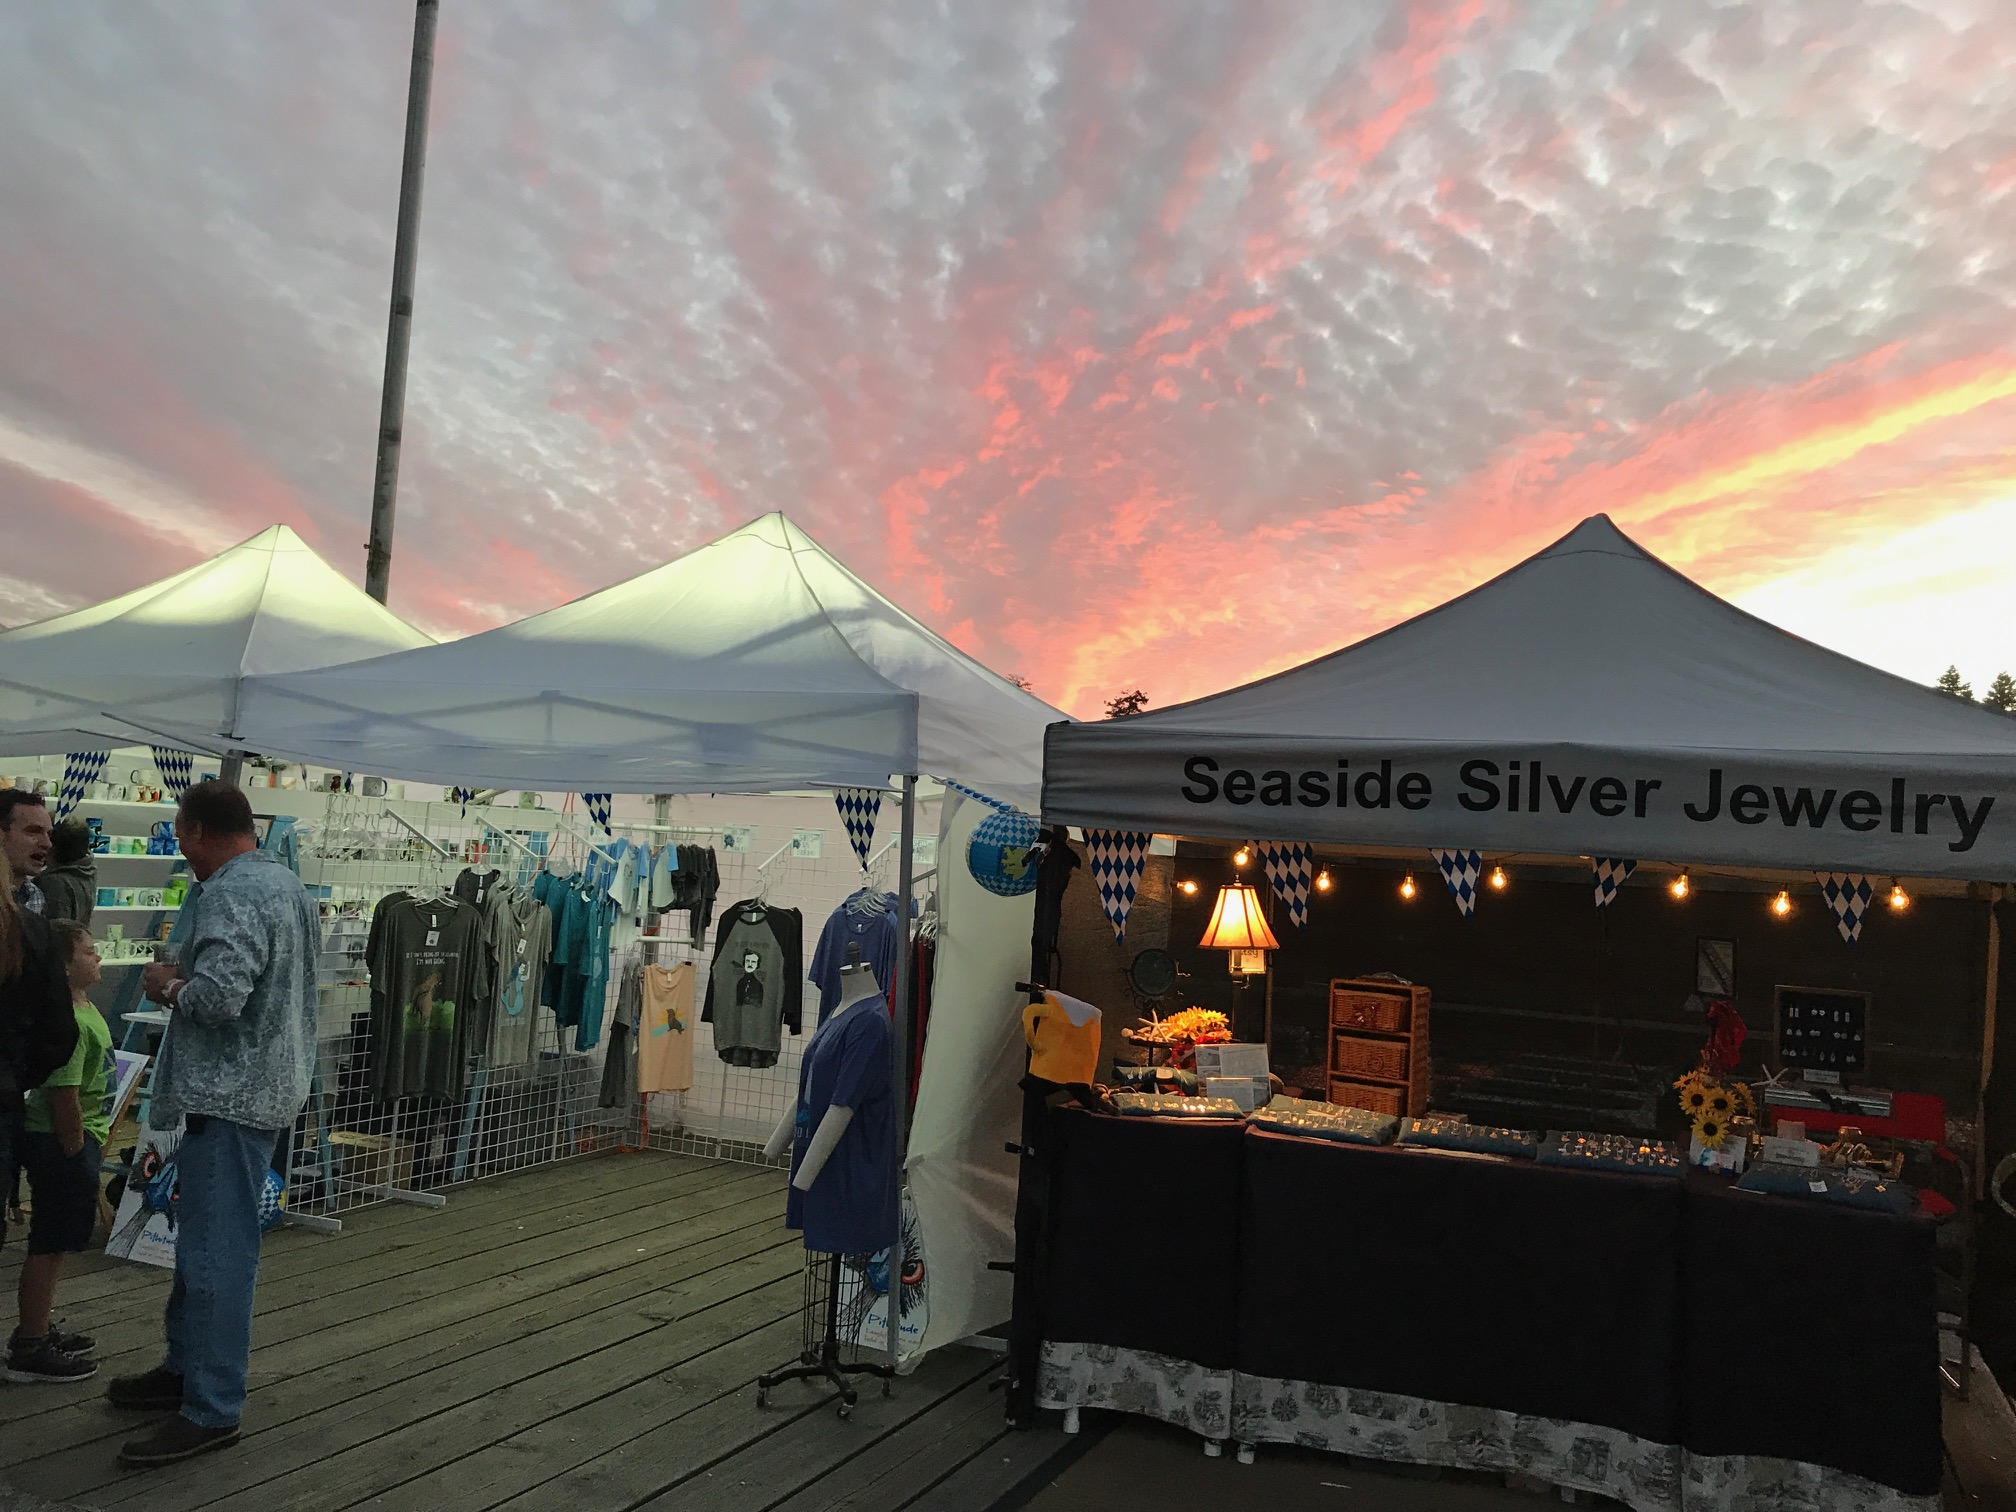 Pic by Susan Baughman of Seaside Silver Jewelry